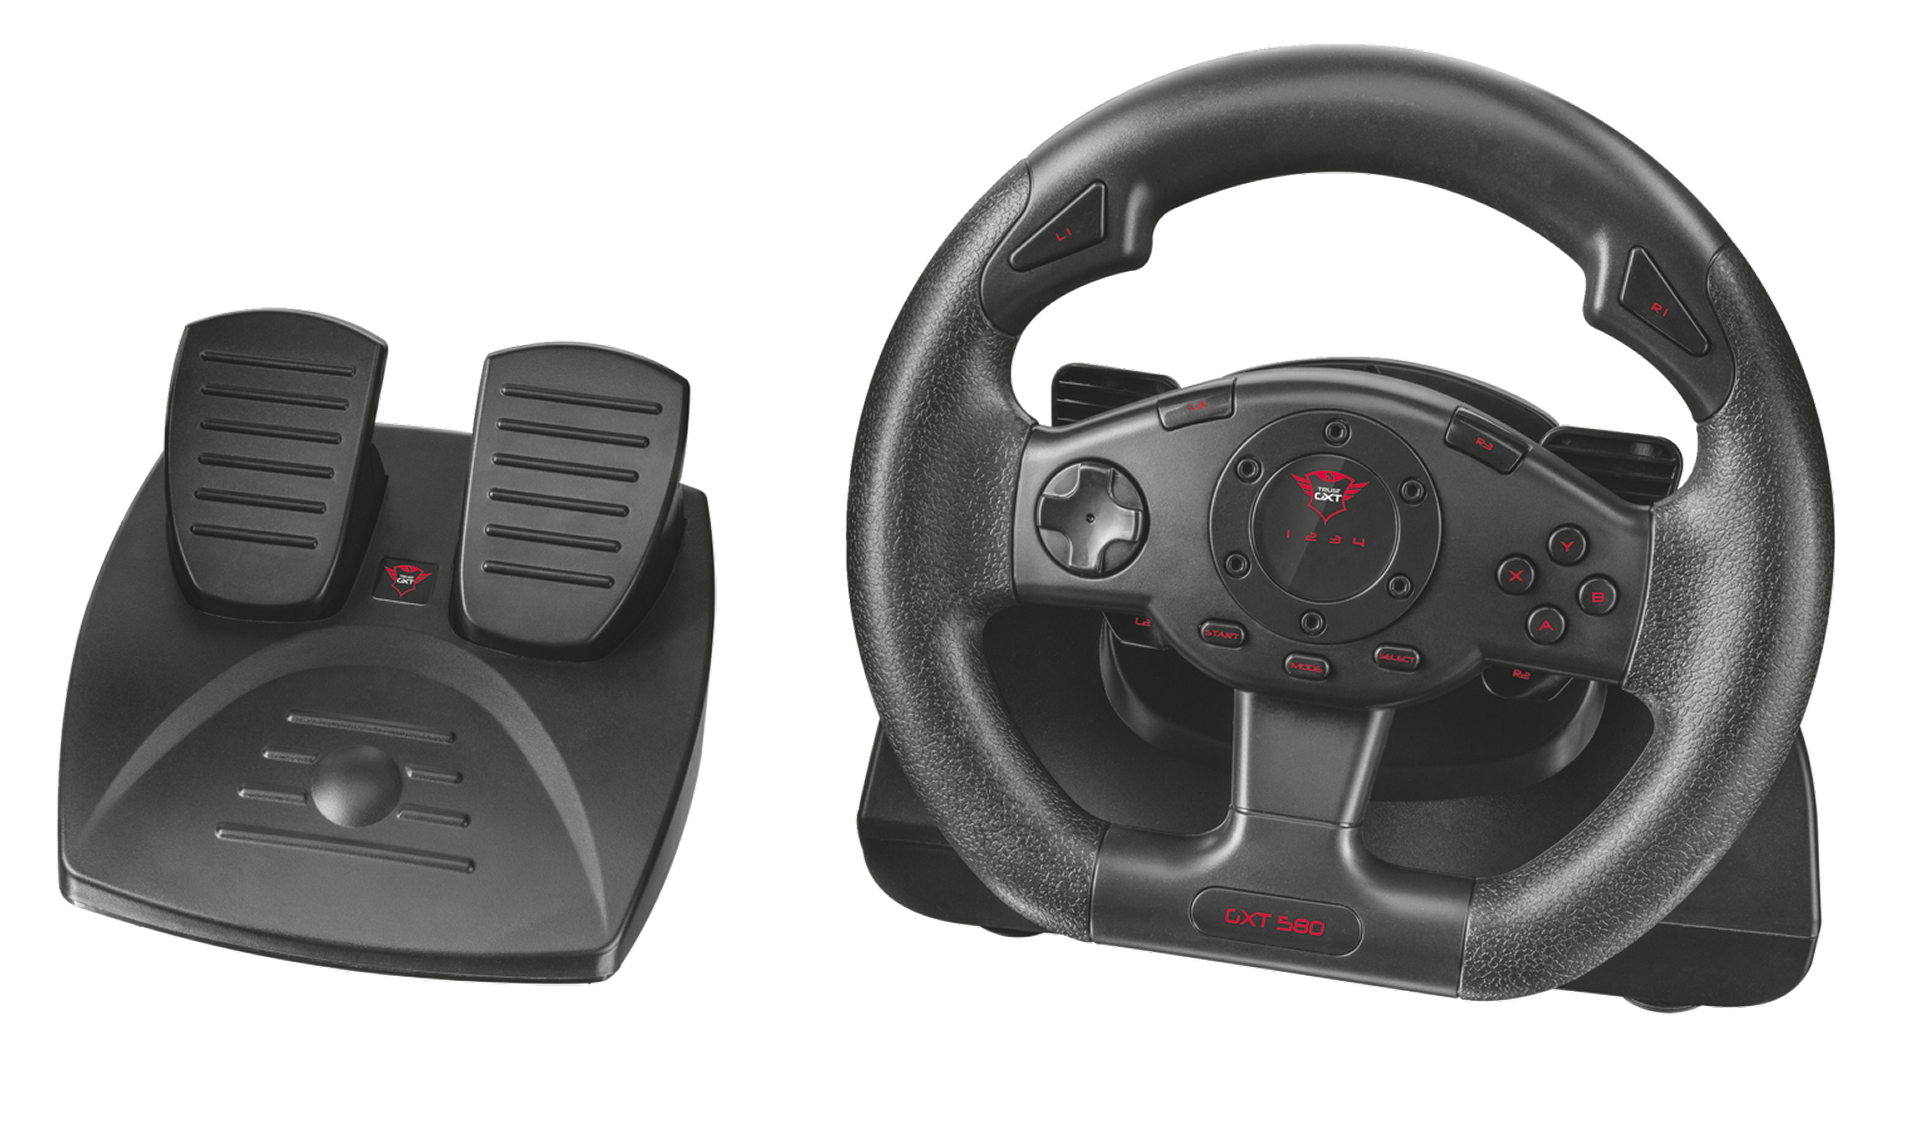 volant trust gxt 580 vibration feedback racing wheel. Black Bedroom Furniture Sets. Home Design Ideas